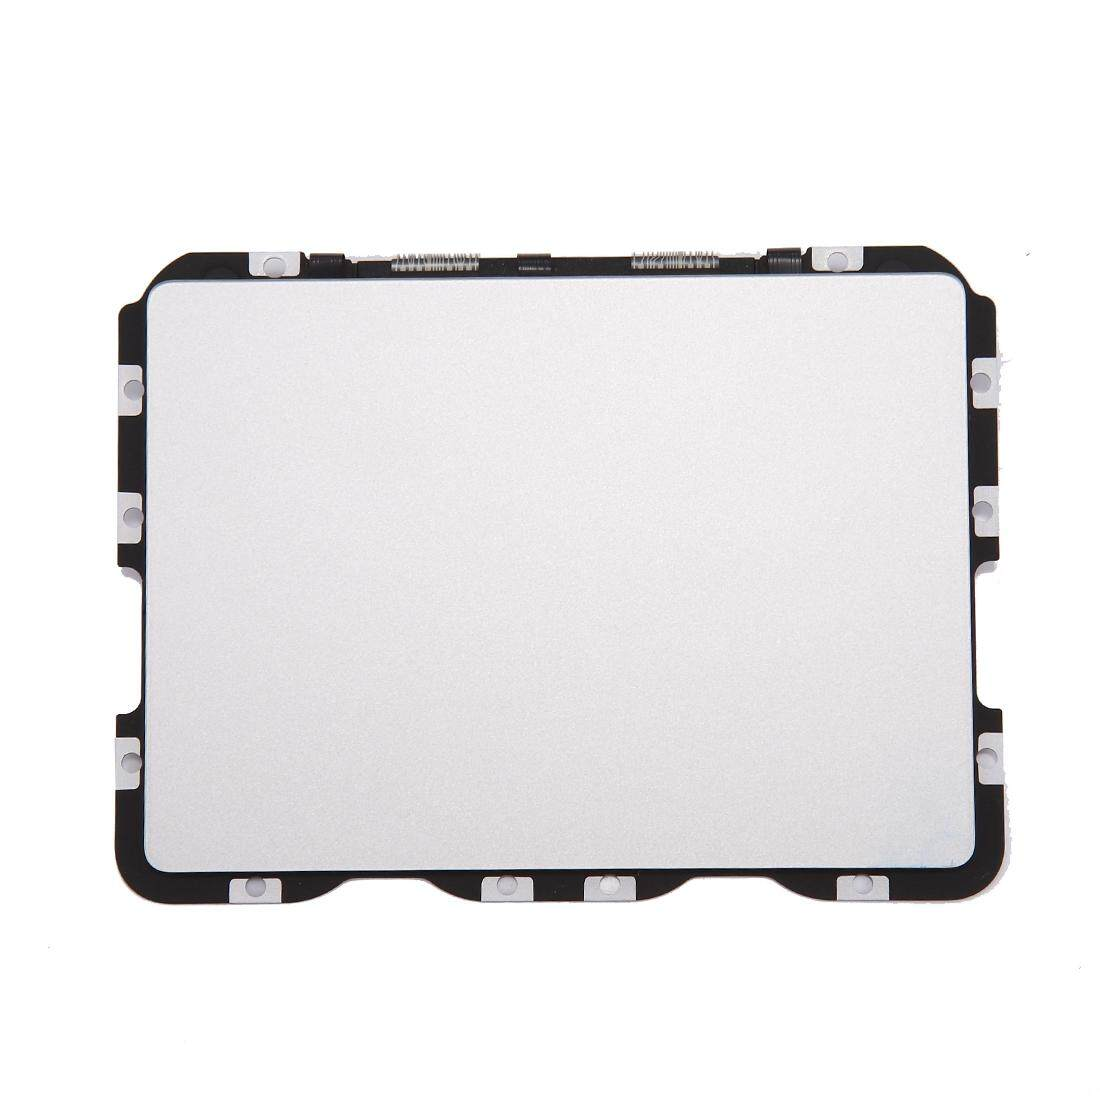 TouchPad untuk MacBook Pro 13.3 Inch A1502 (Awal 2015)/821-00149-A